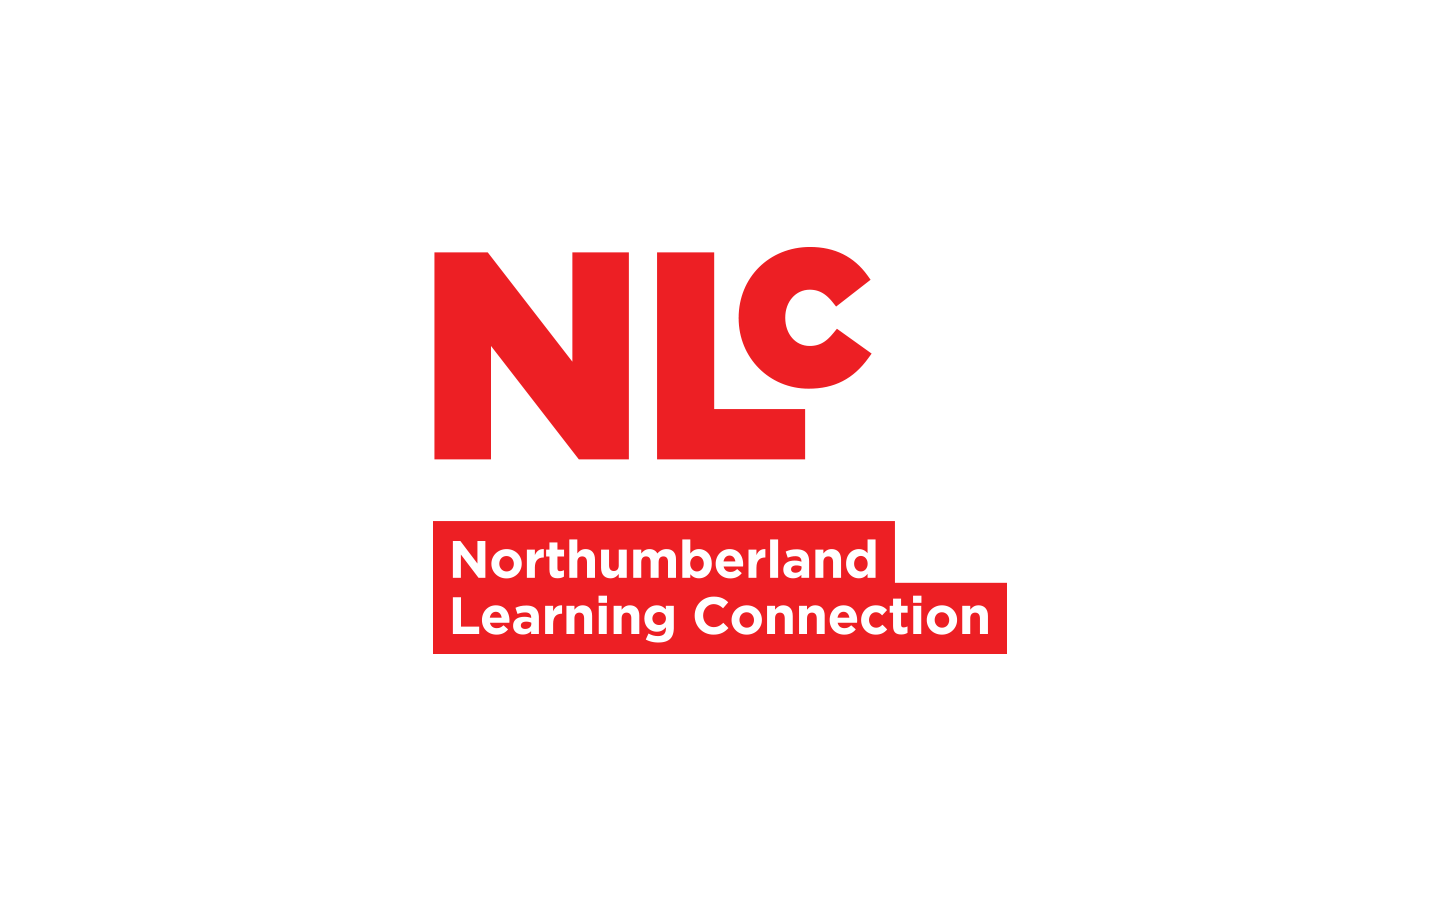 NLC_logo_mockup_red.png